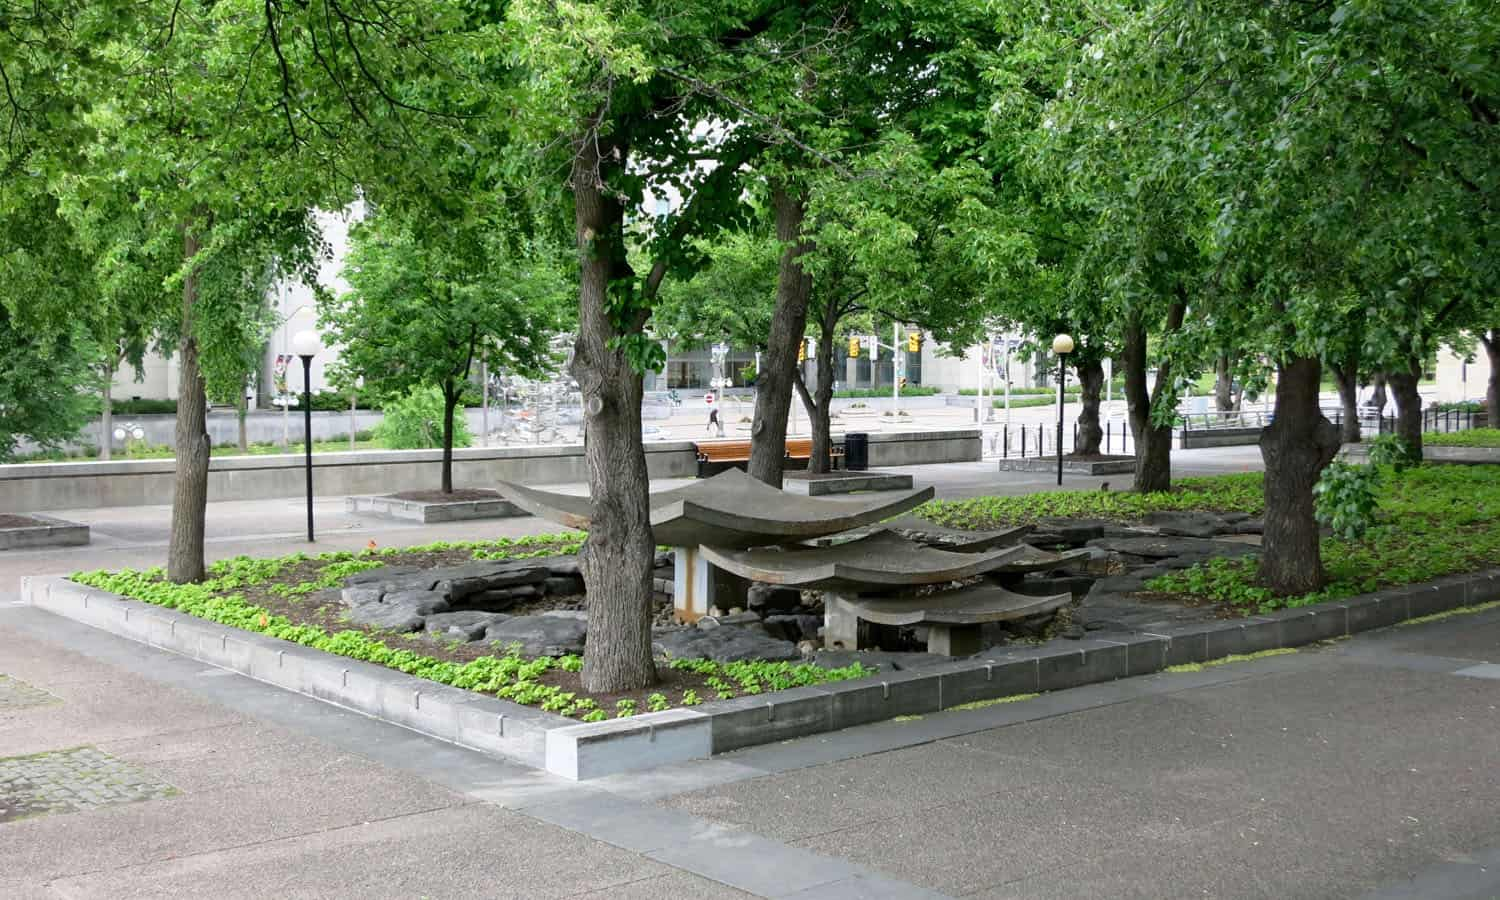 The concrete Fountain of the Great Lakes by Emili G. van der Meulen on the upper terrace